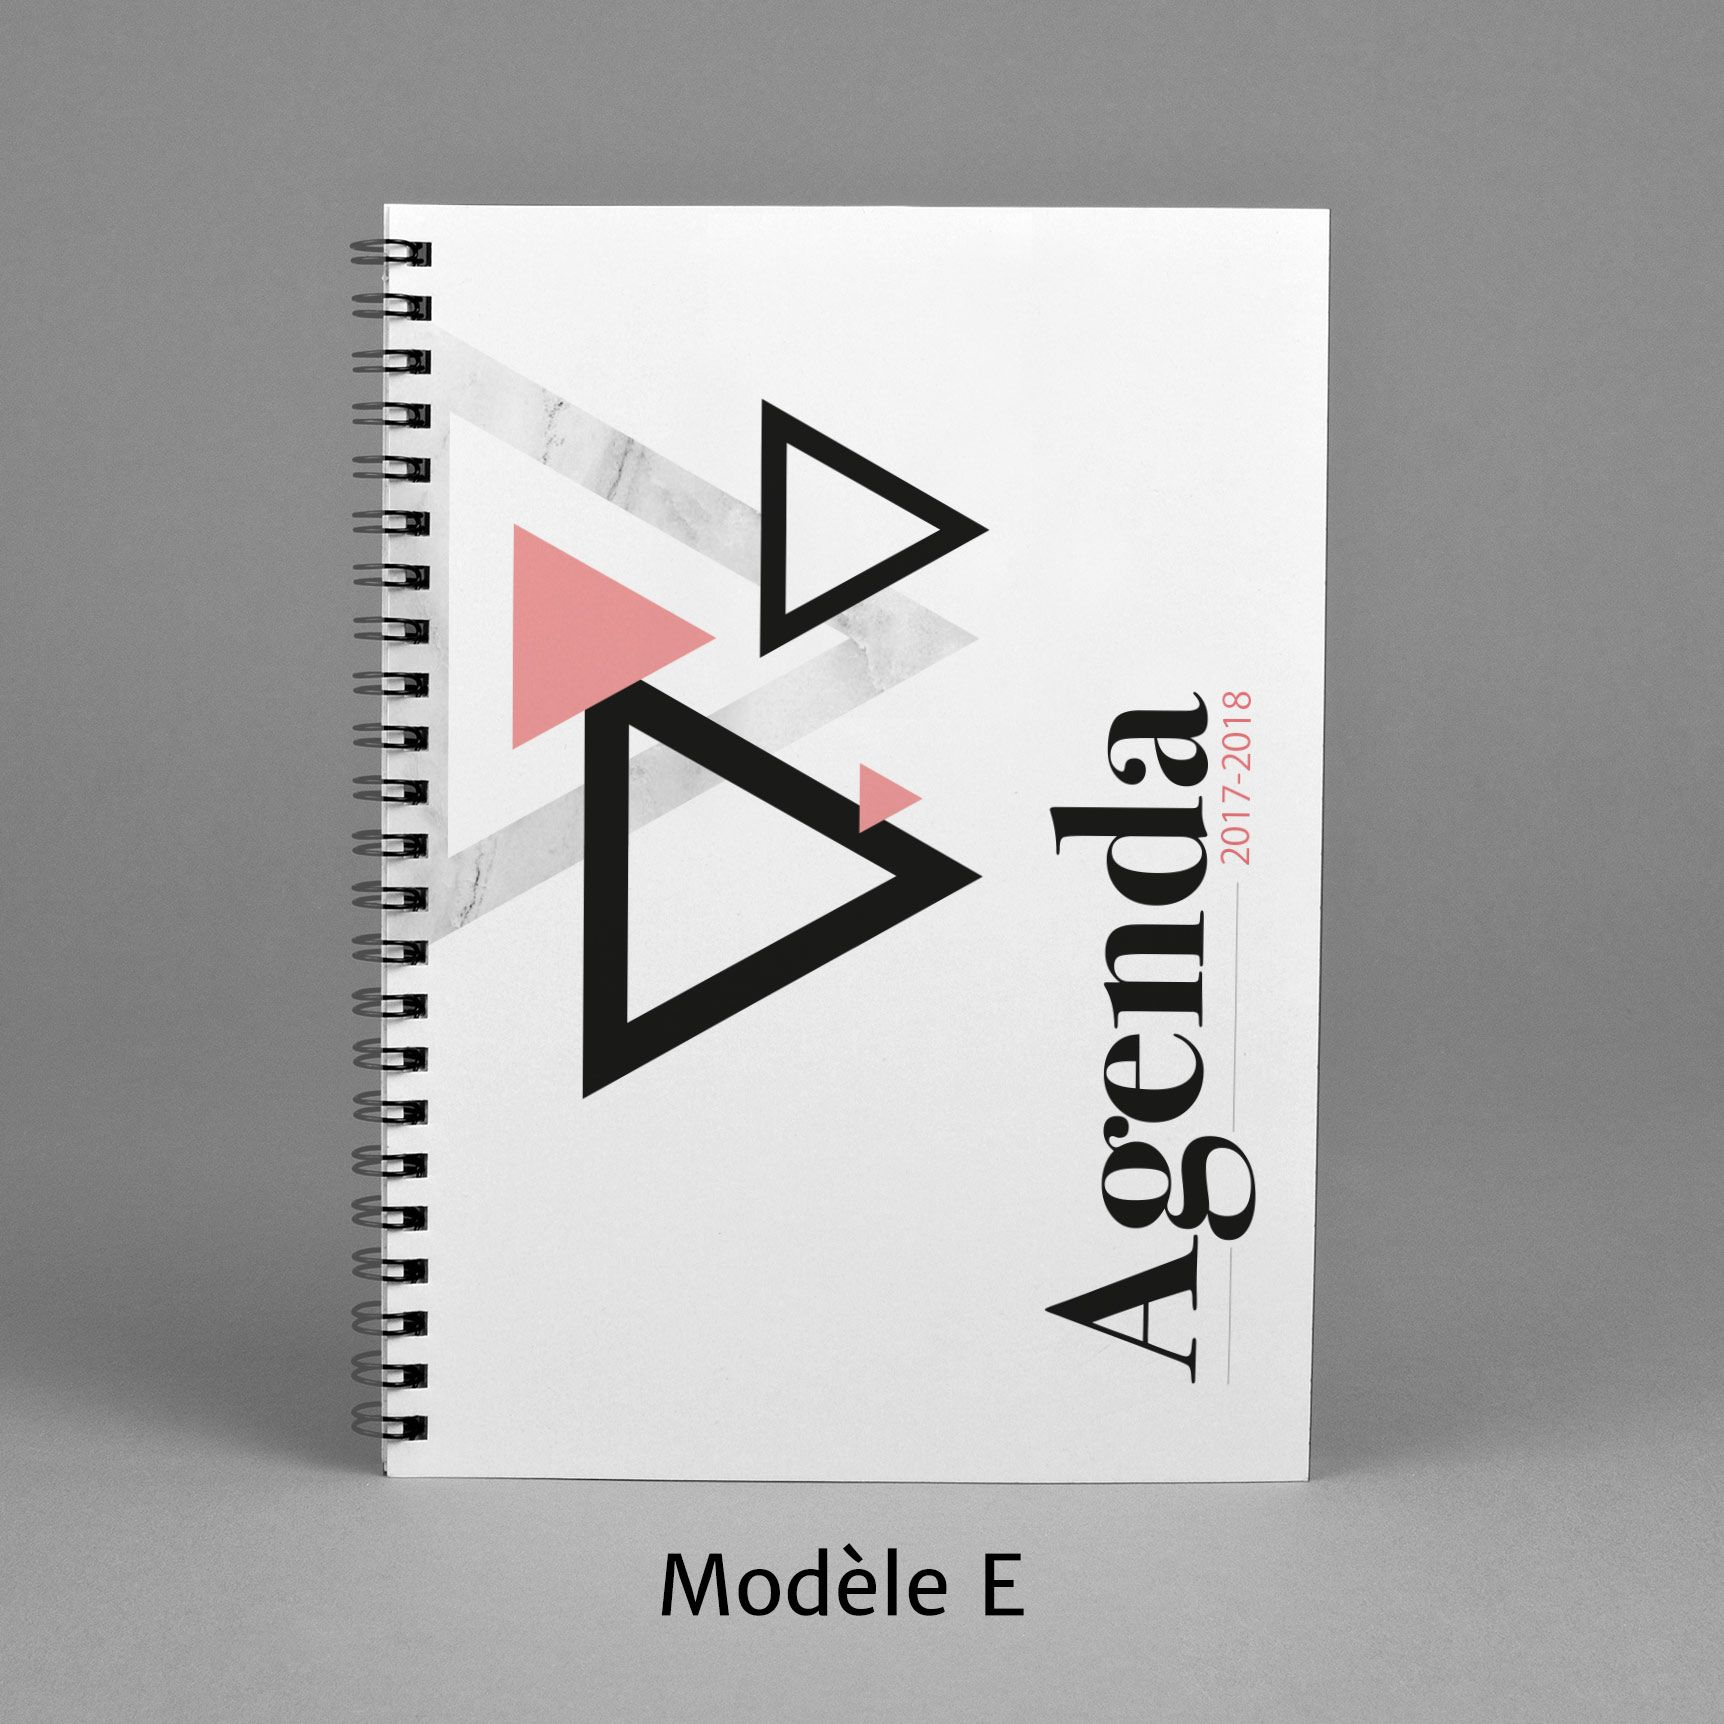 Agenda 2017 2018 modèle e 40 pink black and white marble triangle pattern